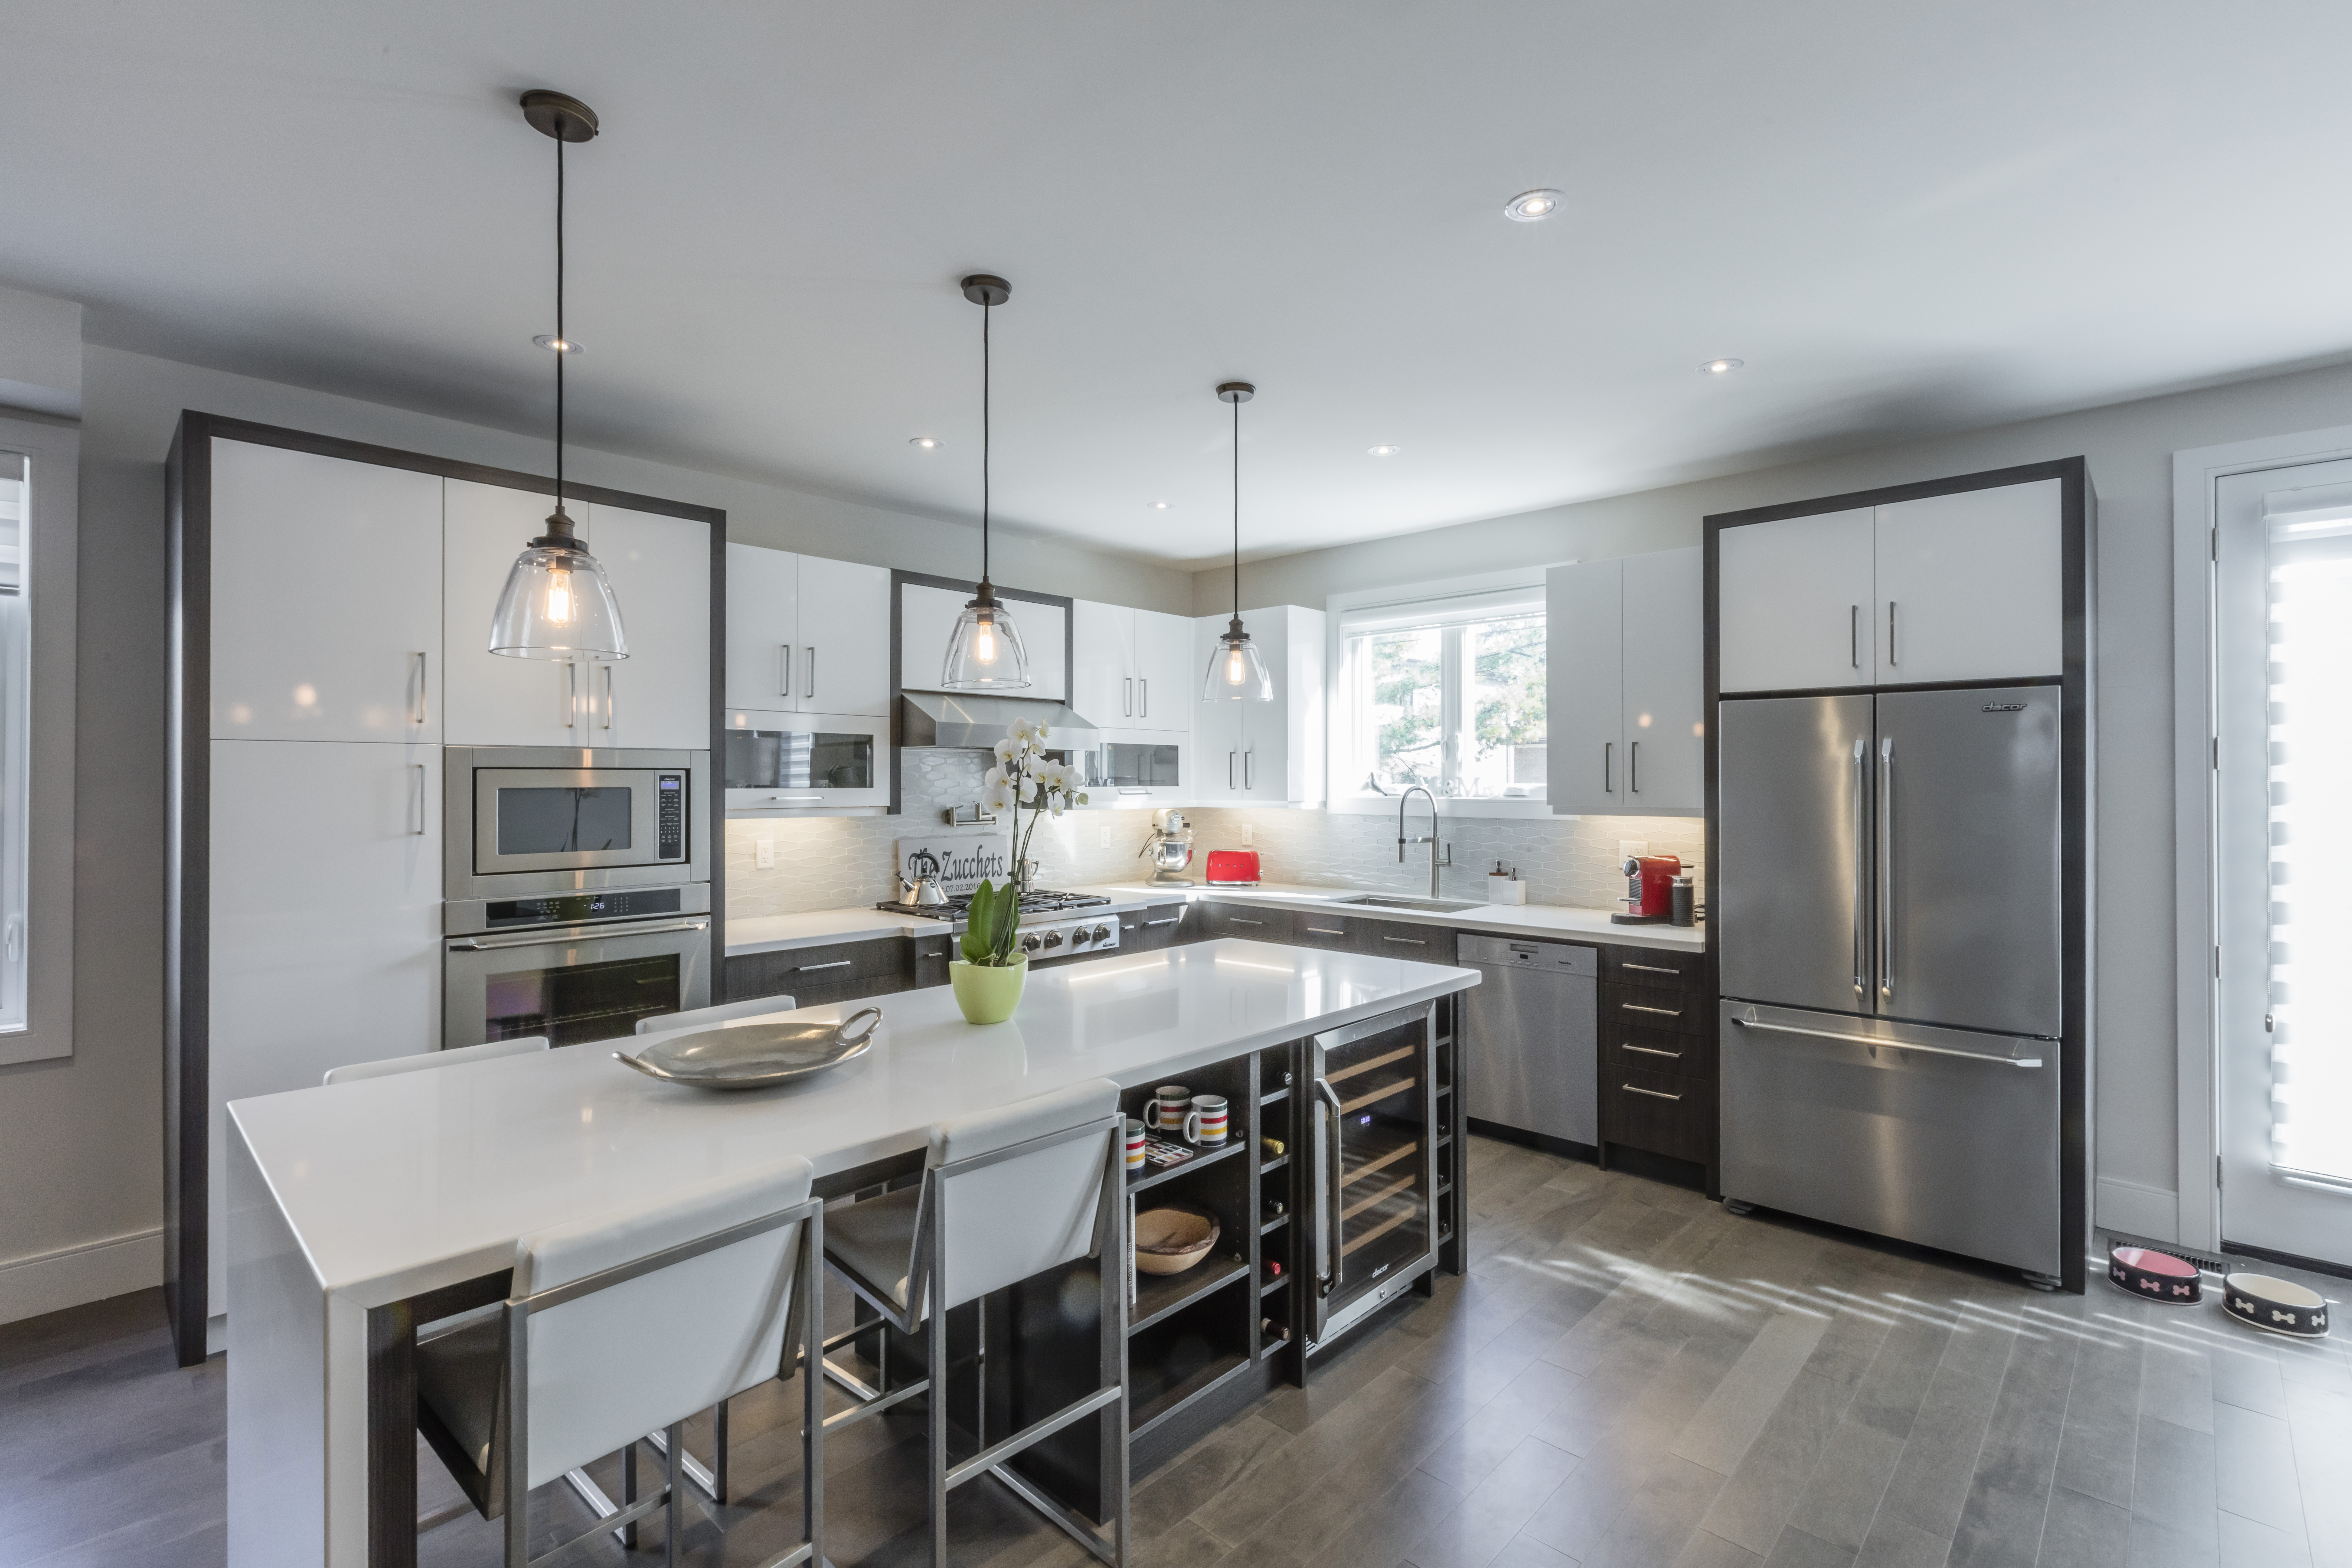 This Contemporary Two Tone White And Grey Kitchen Designed For A Young And  Active Couple. Custom Kitchen Cabinets Are By U201cTalorau201d By Decor Featured In  MDF ...